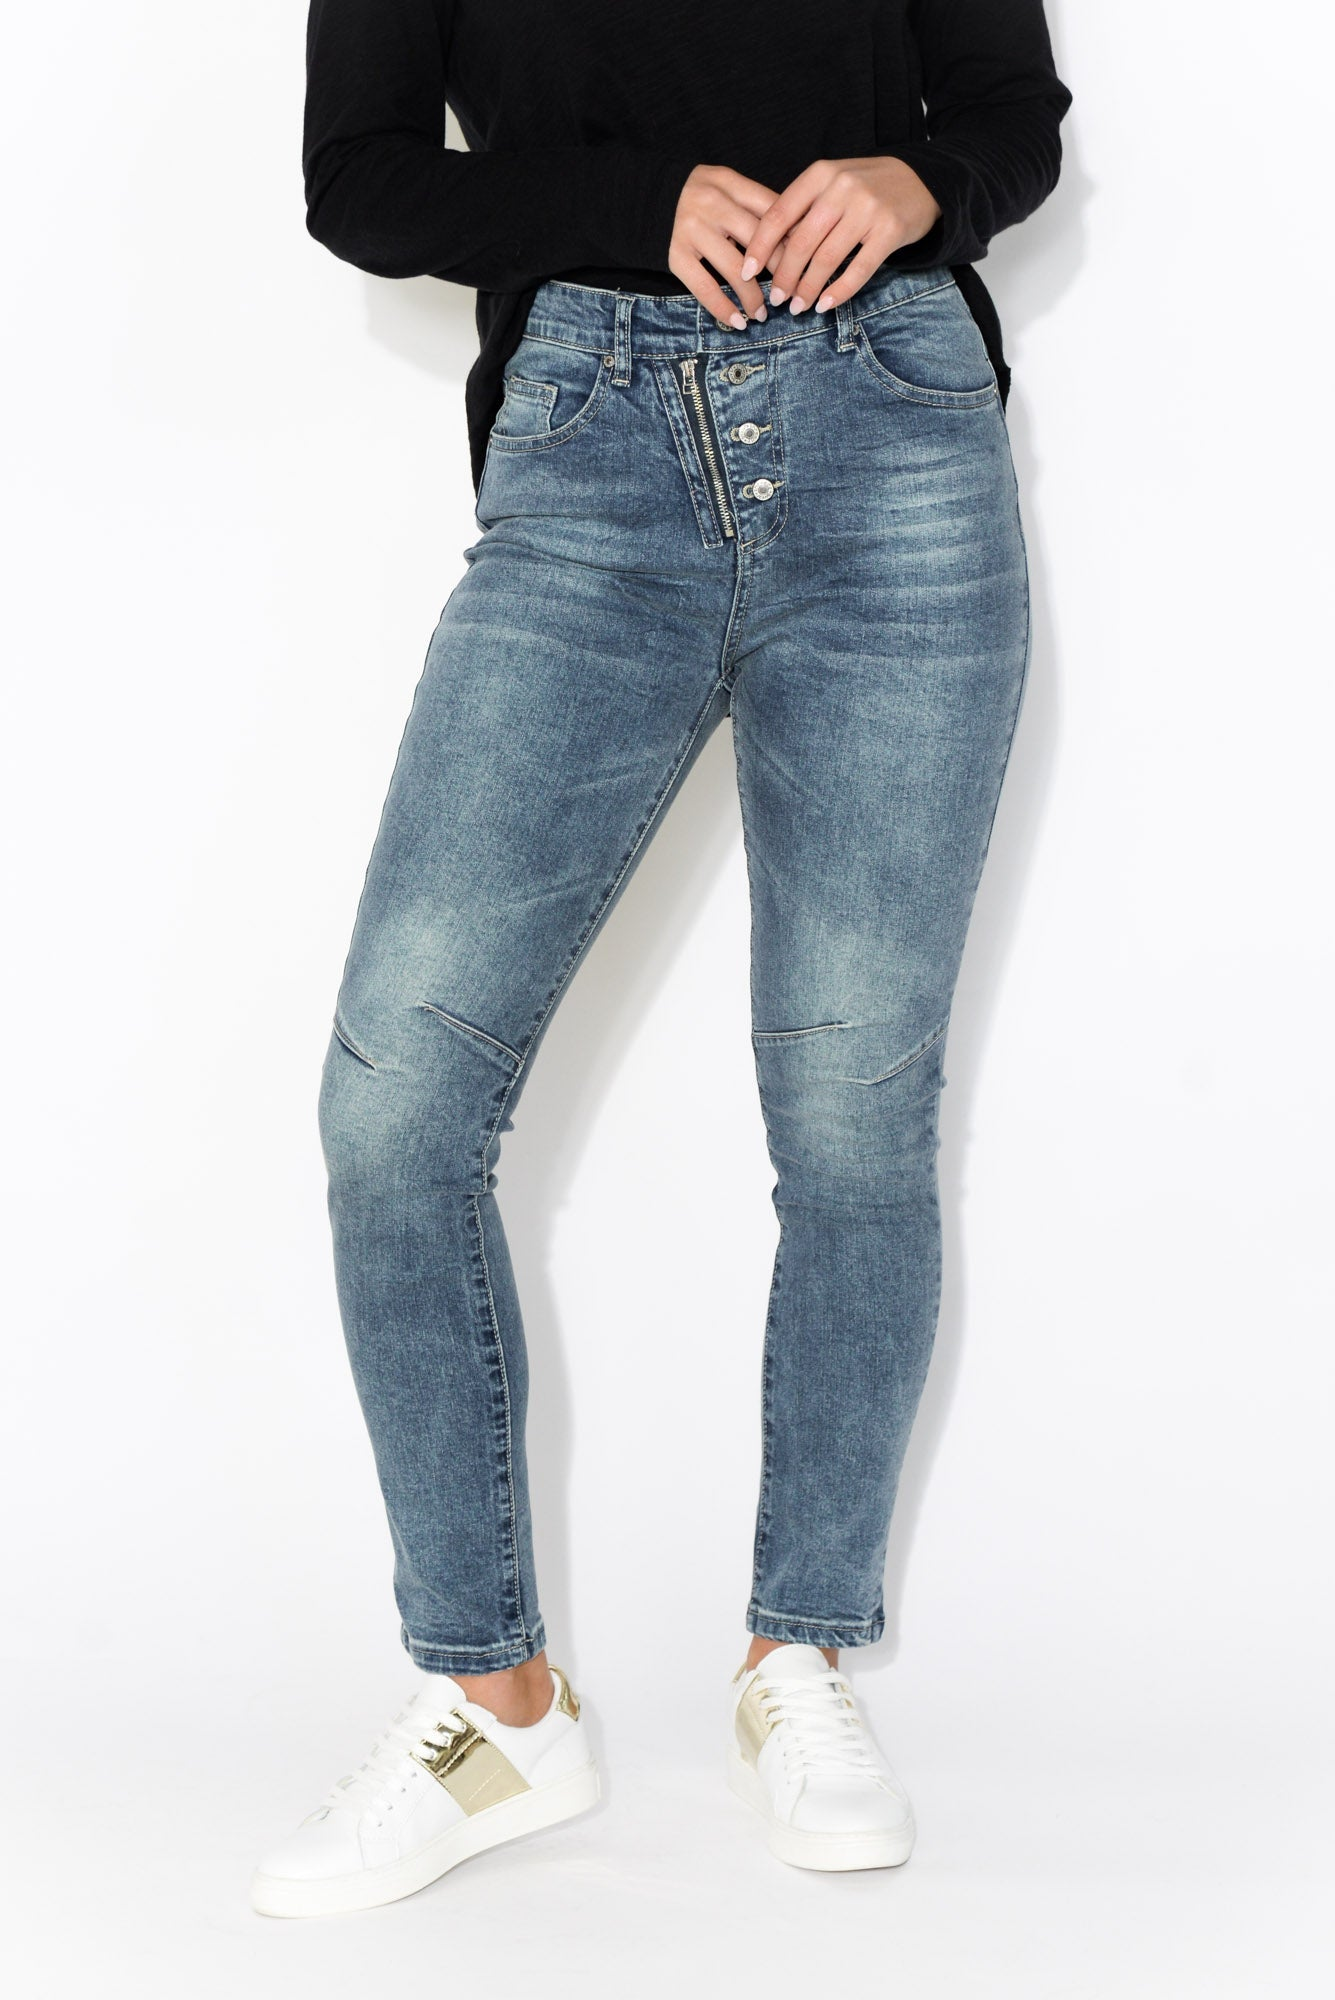 Dani Blue Cotton Stretch Jean